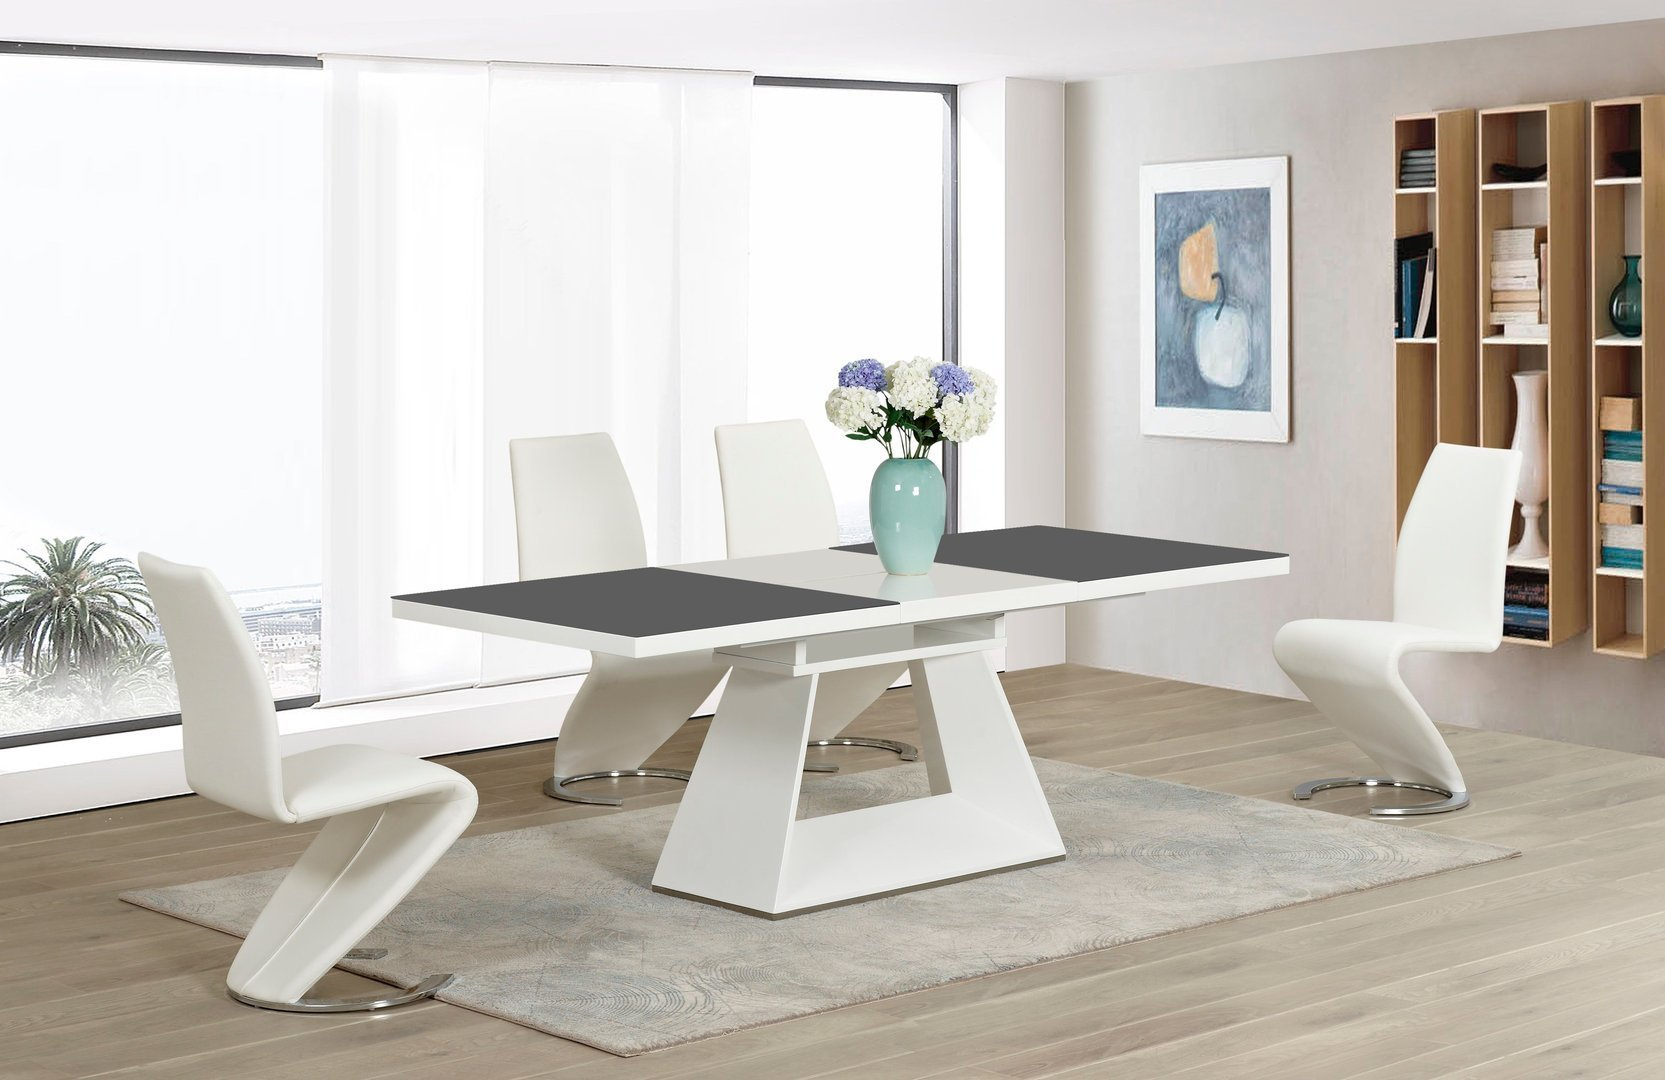 White High Gloss Grey Glass Ex Dining Table and 4 White Z  : whiteglossgreyglassdiningtableand4chairs from www.homegenies.co.uk size 1665 x 1080 jpeg 189kB